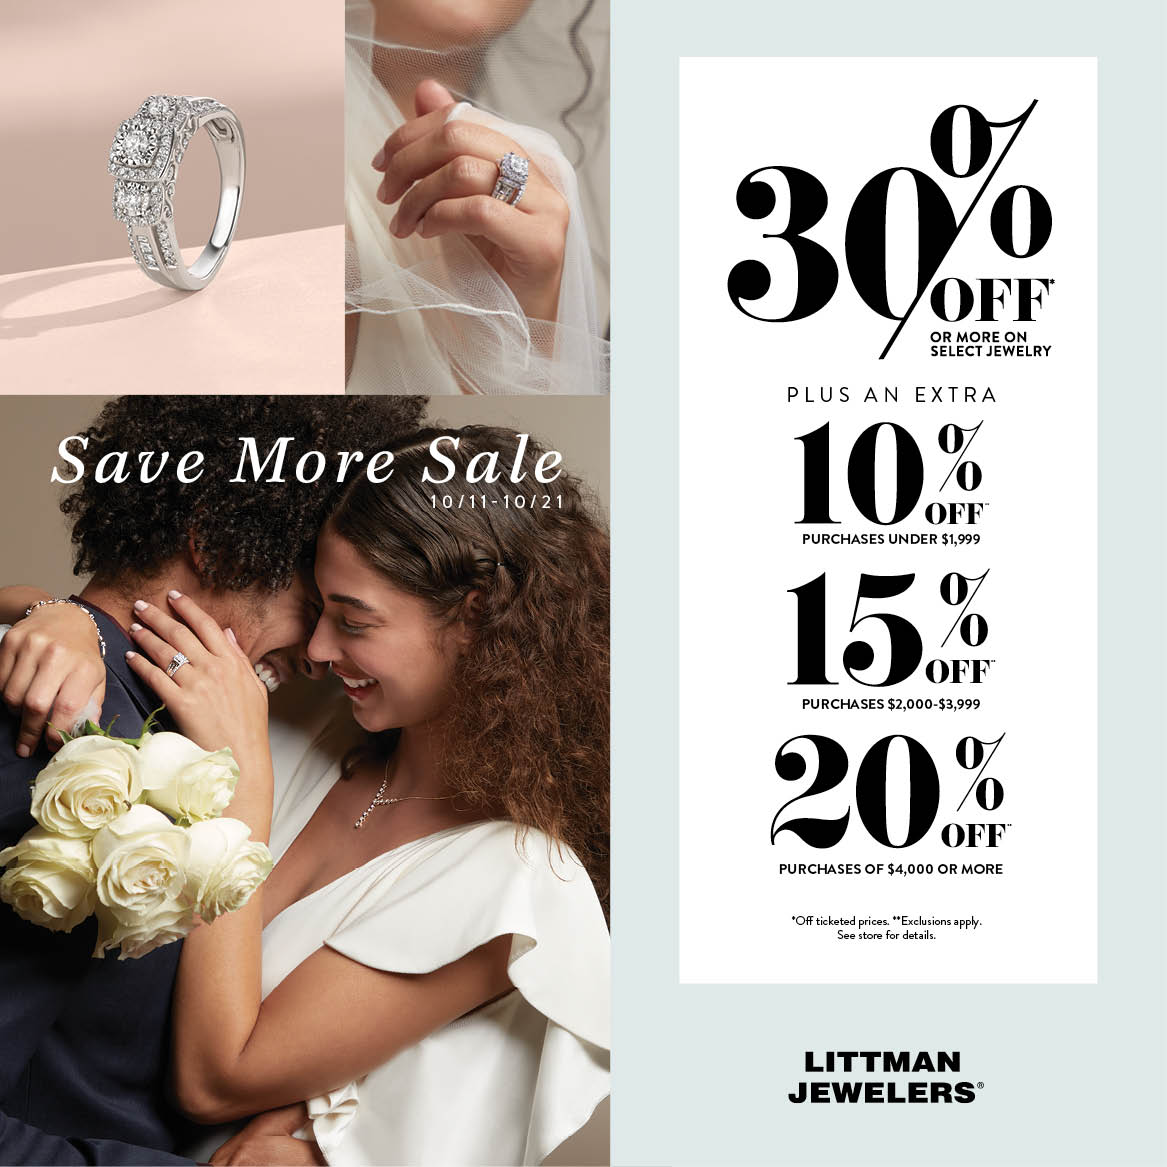 Save More! from Littman Jewelers